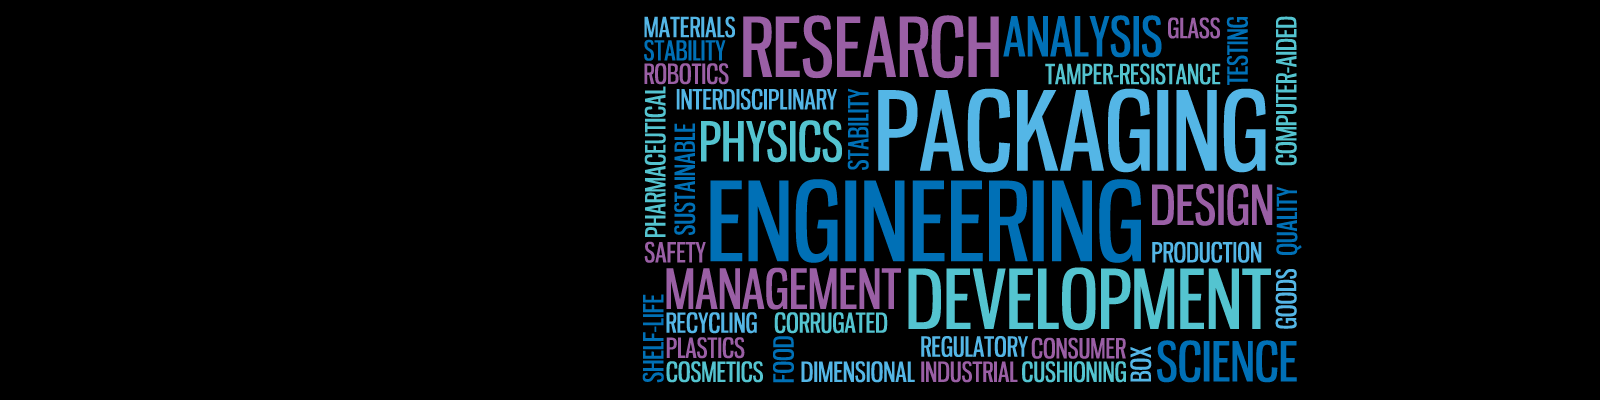 Rutgers University, Packaging Engineering |